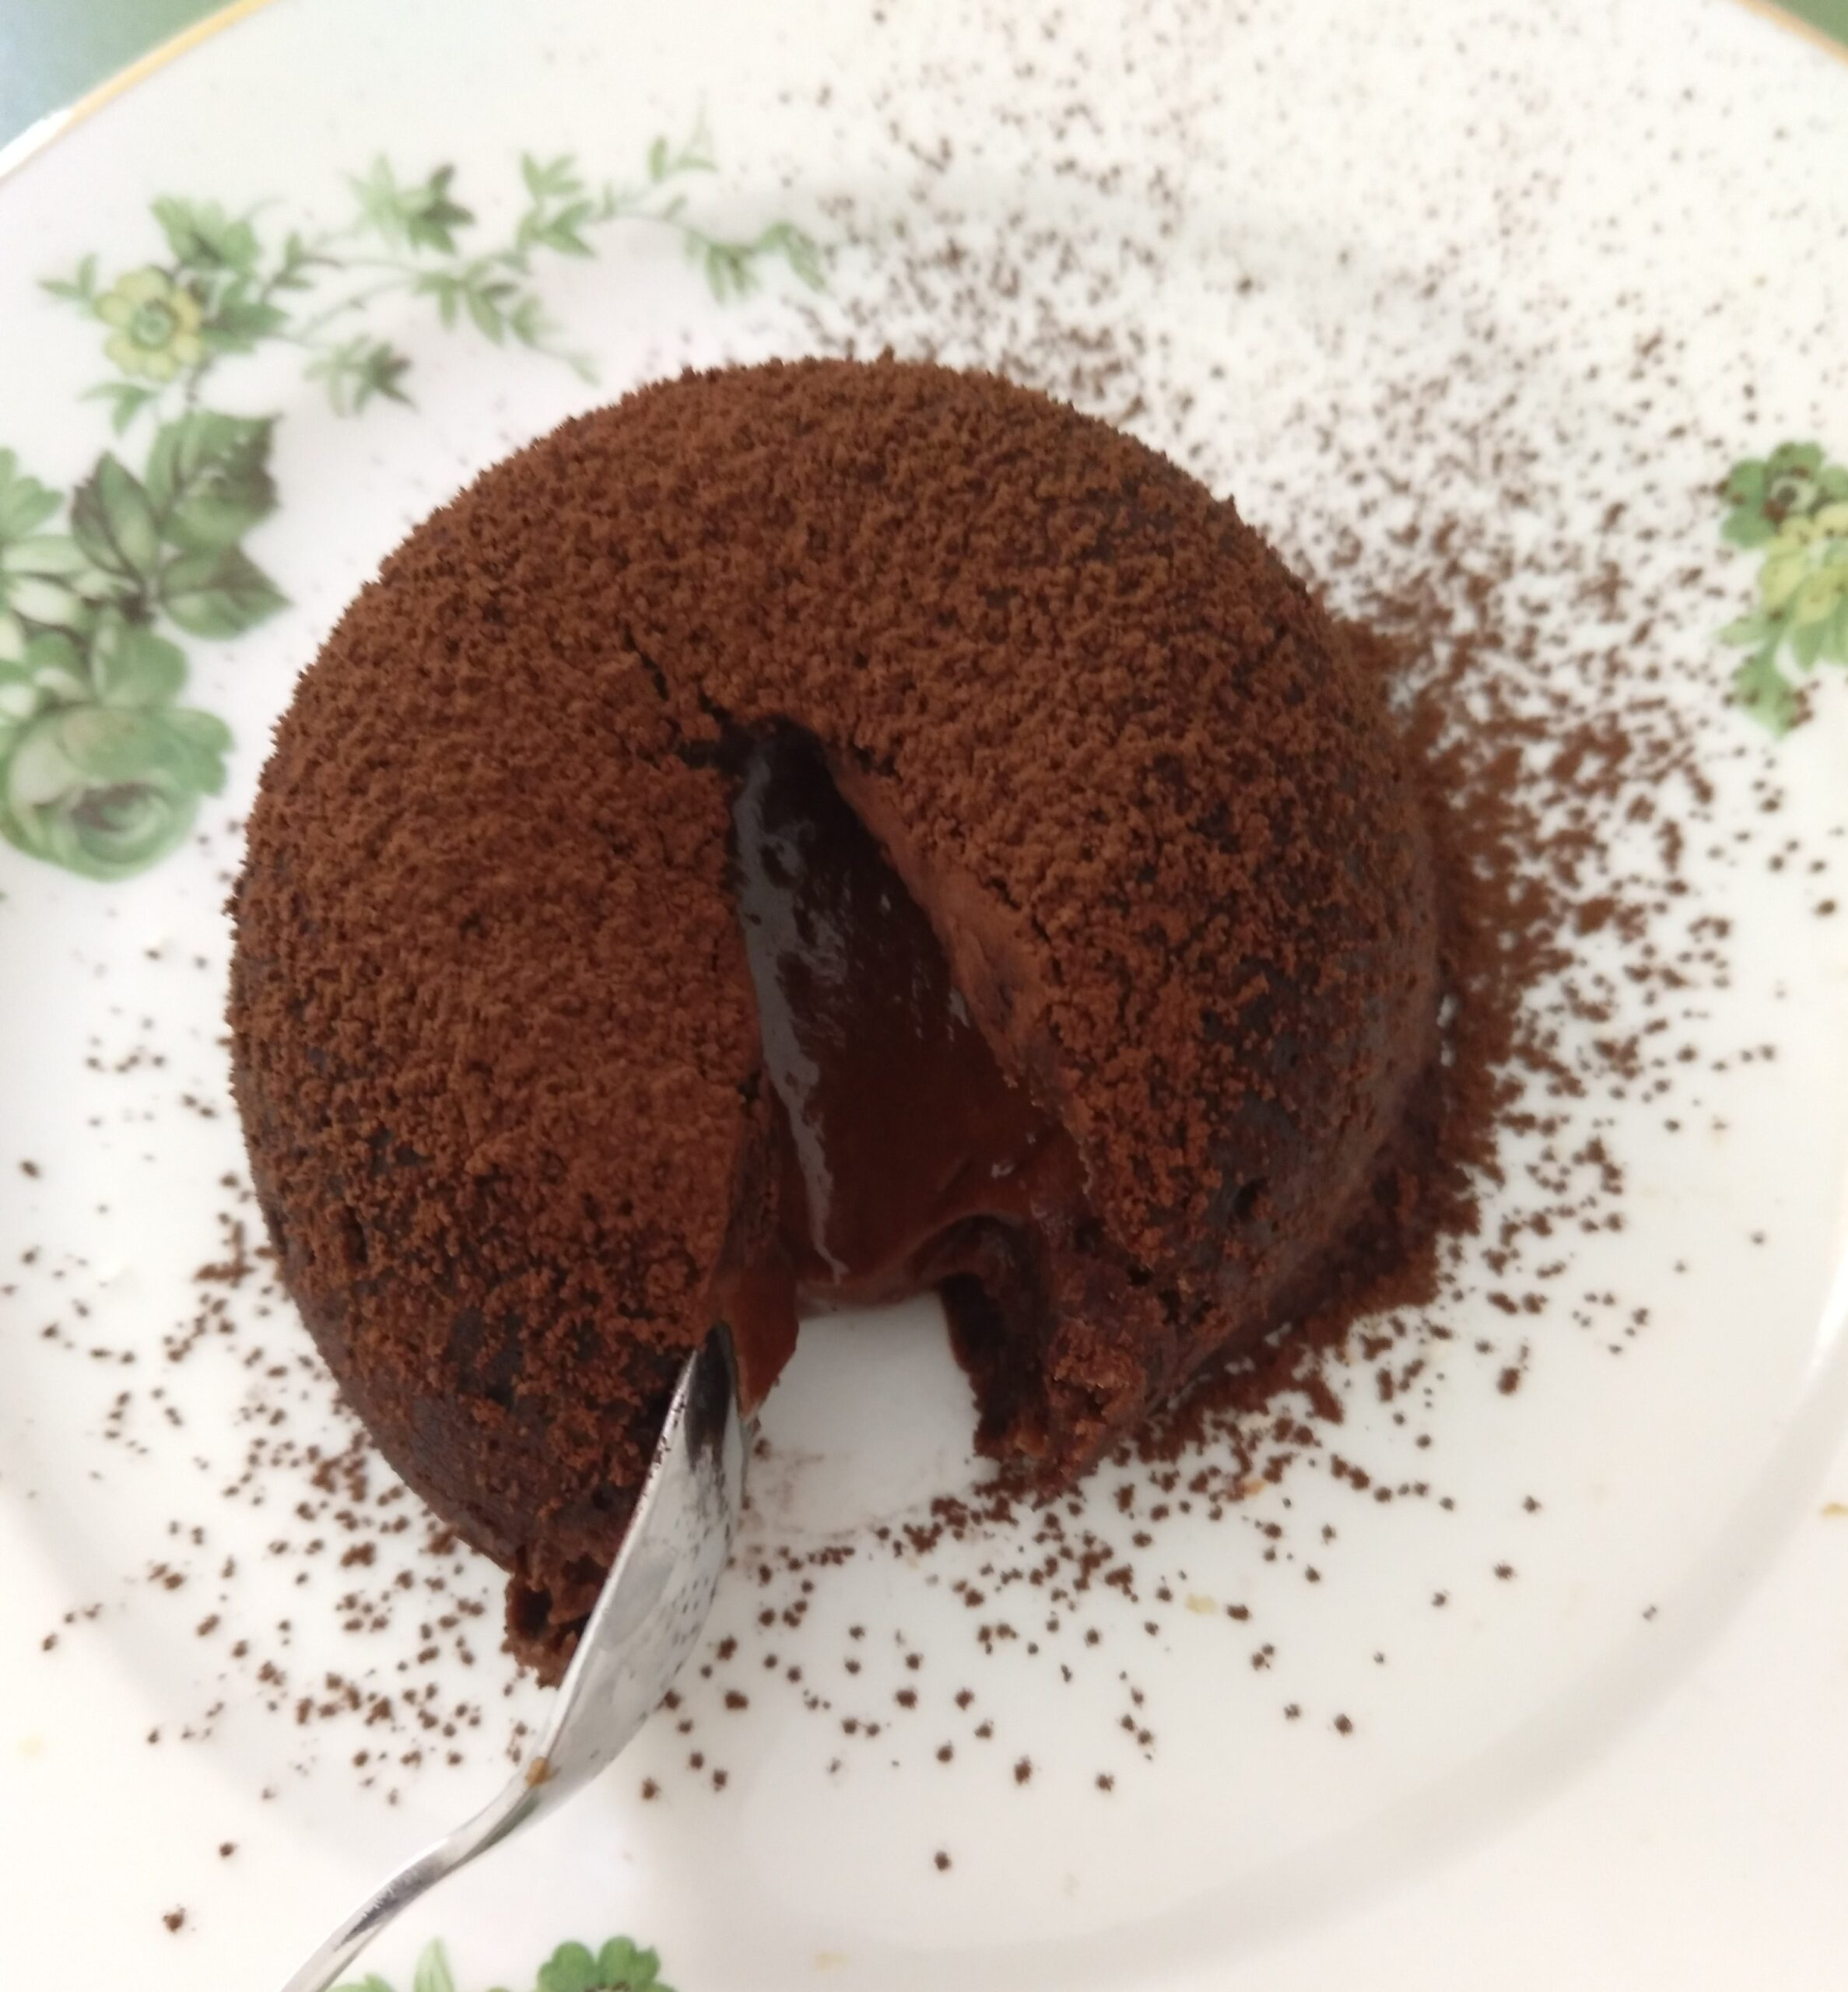 Chocolate coulant or lava cake